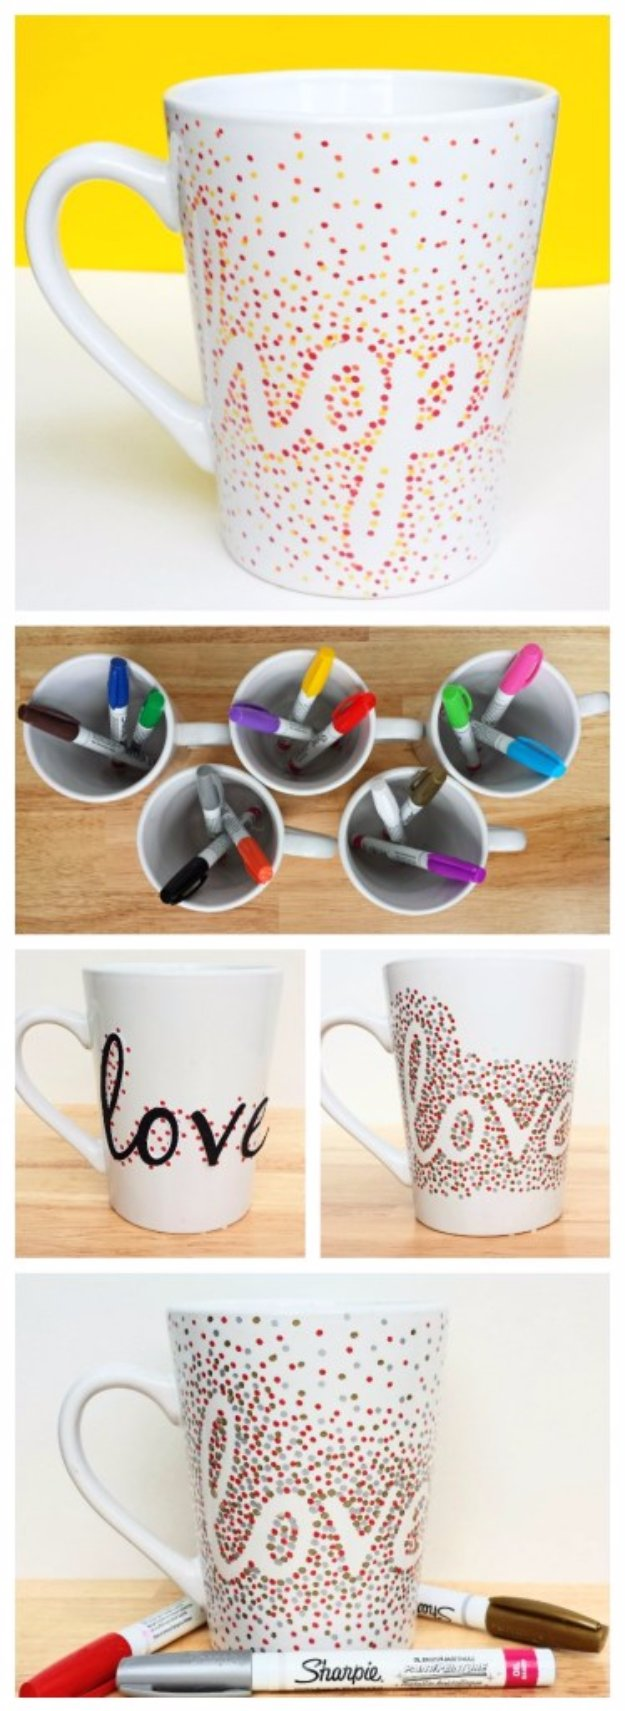 40 amazing crafts to make and sell amazing dotted sharpie mugs solutioingenieria Choice Image